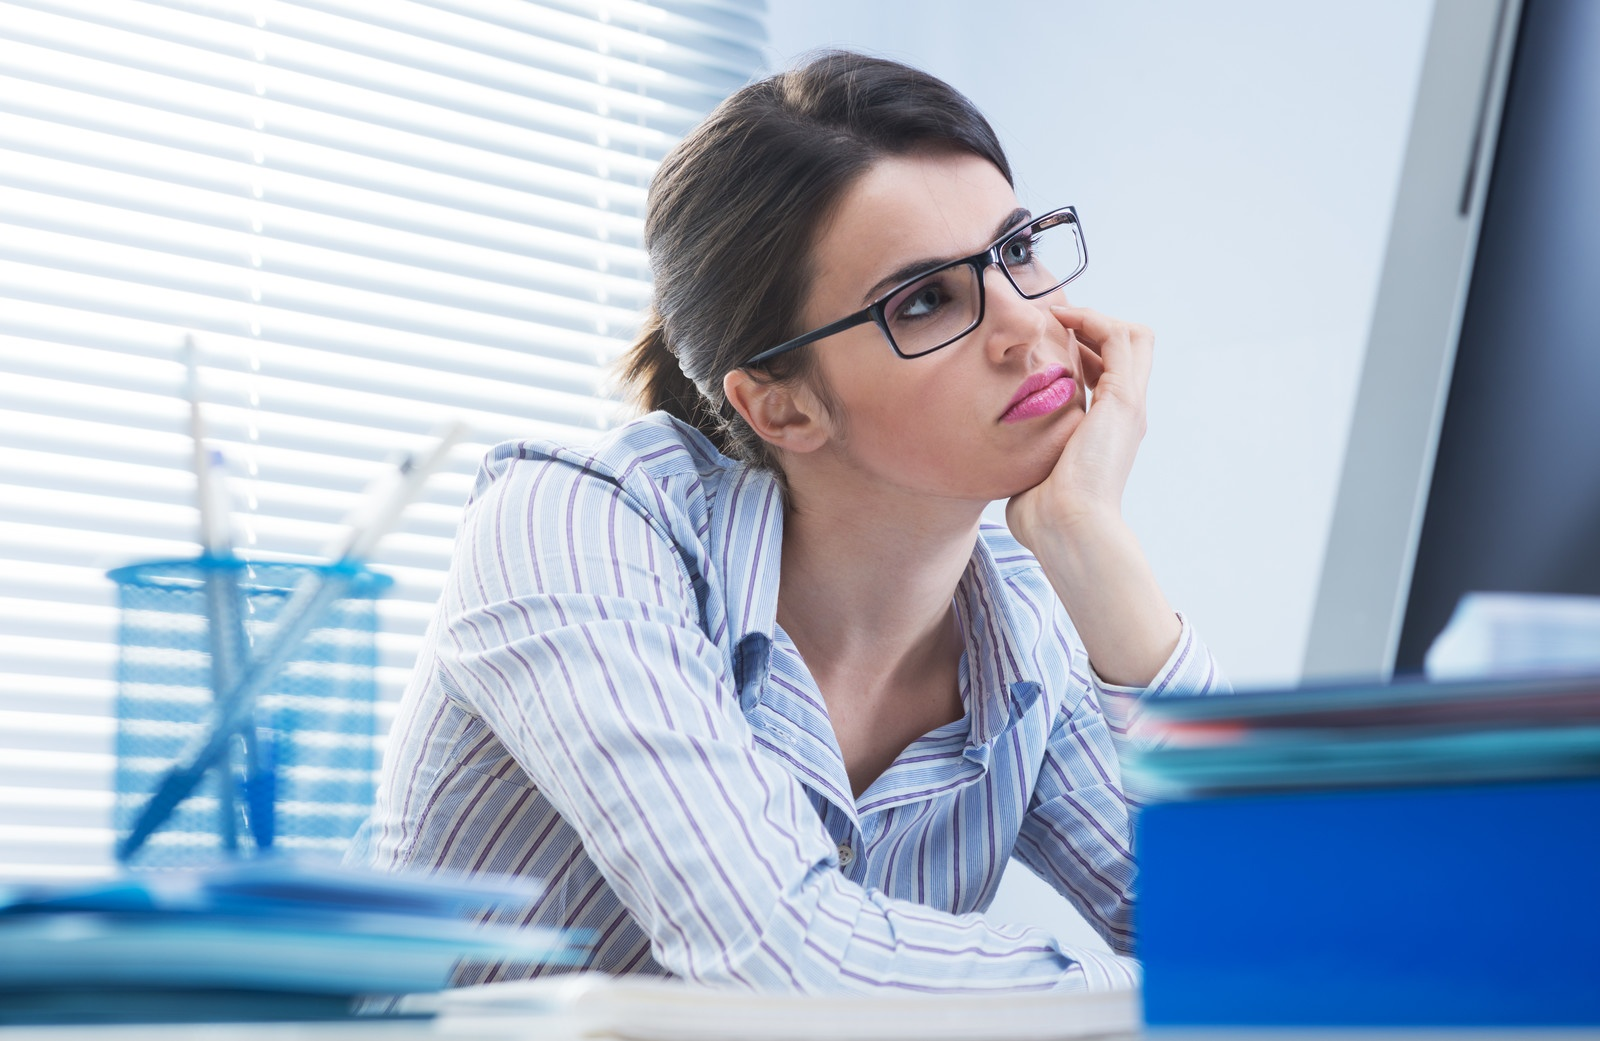 Cleveland CPA woman waiting by computer.jpg